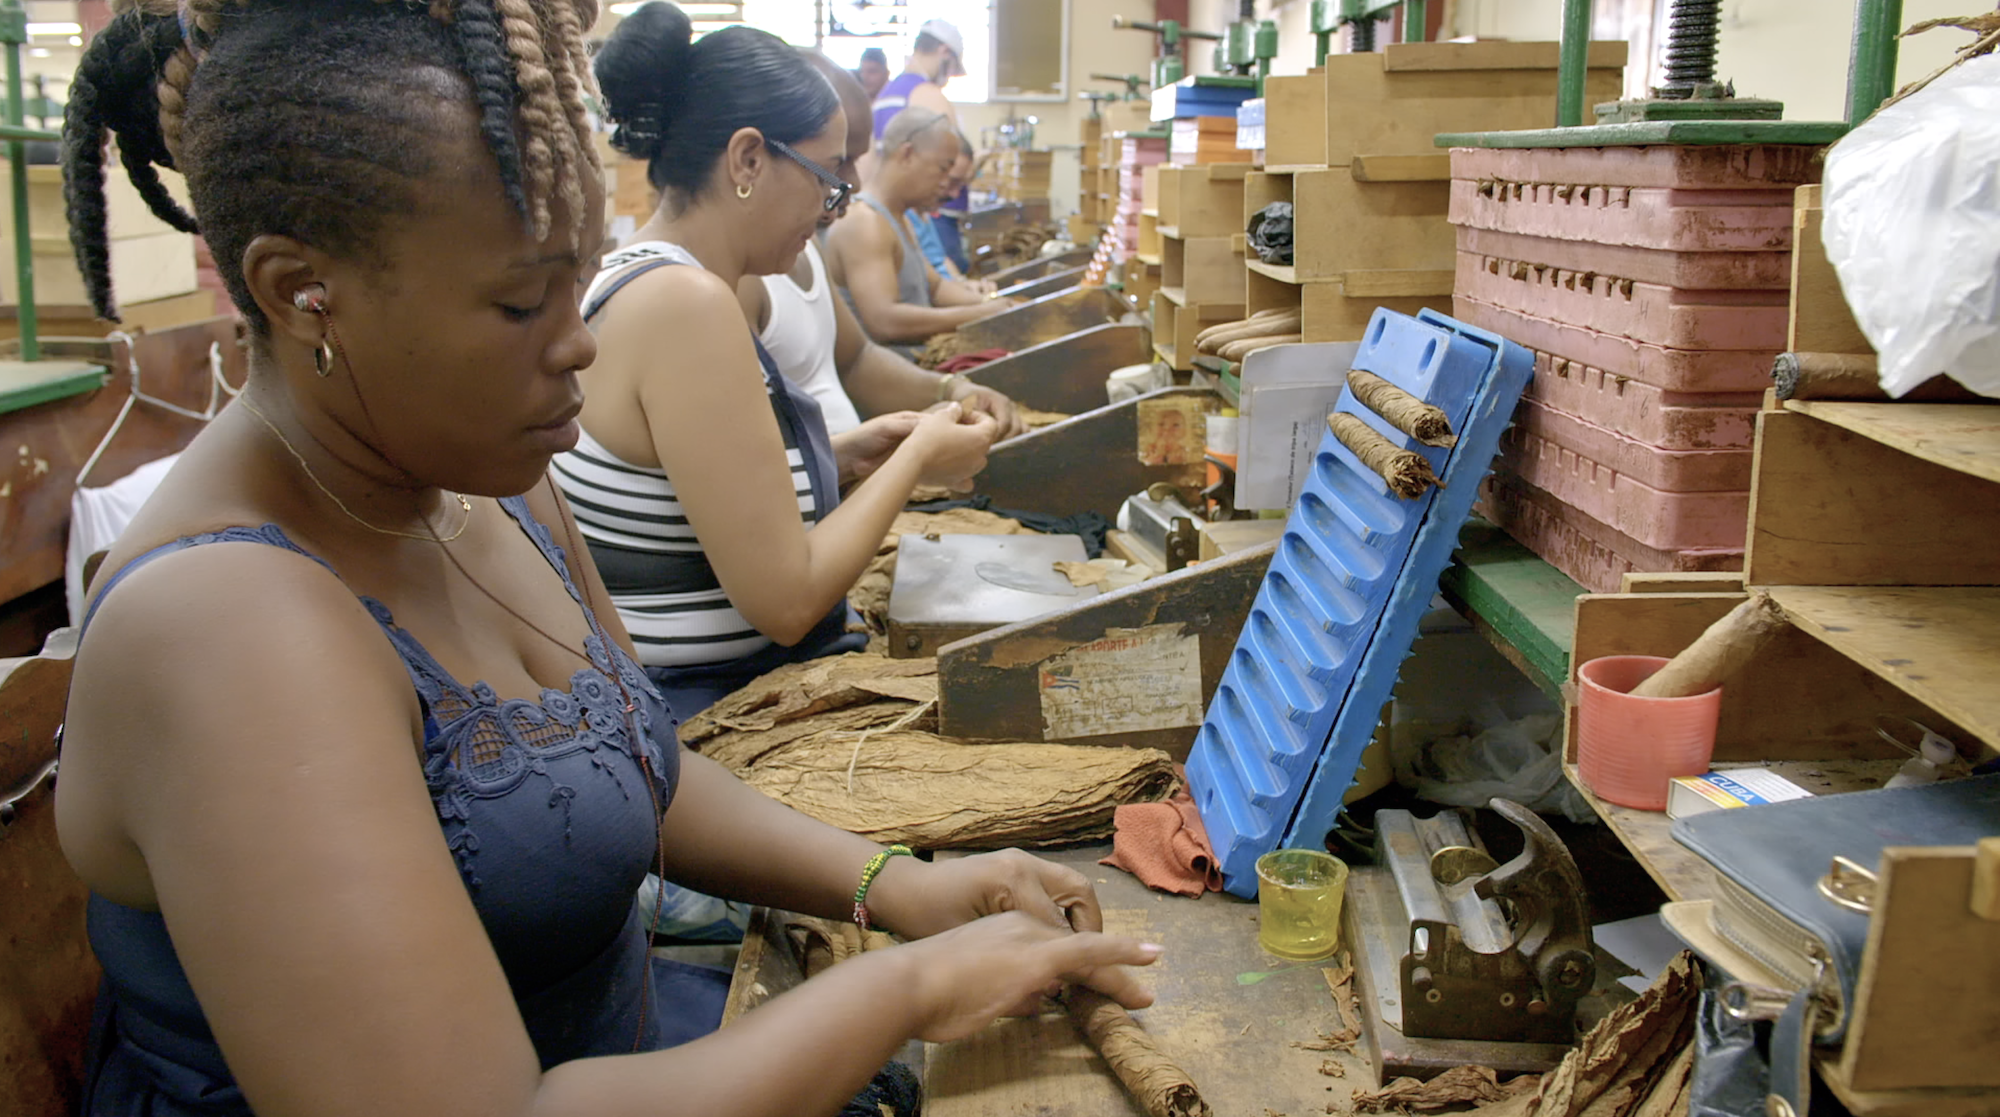 Women in the cigar factory rolling tobacco.